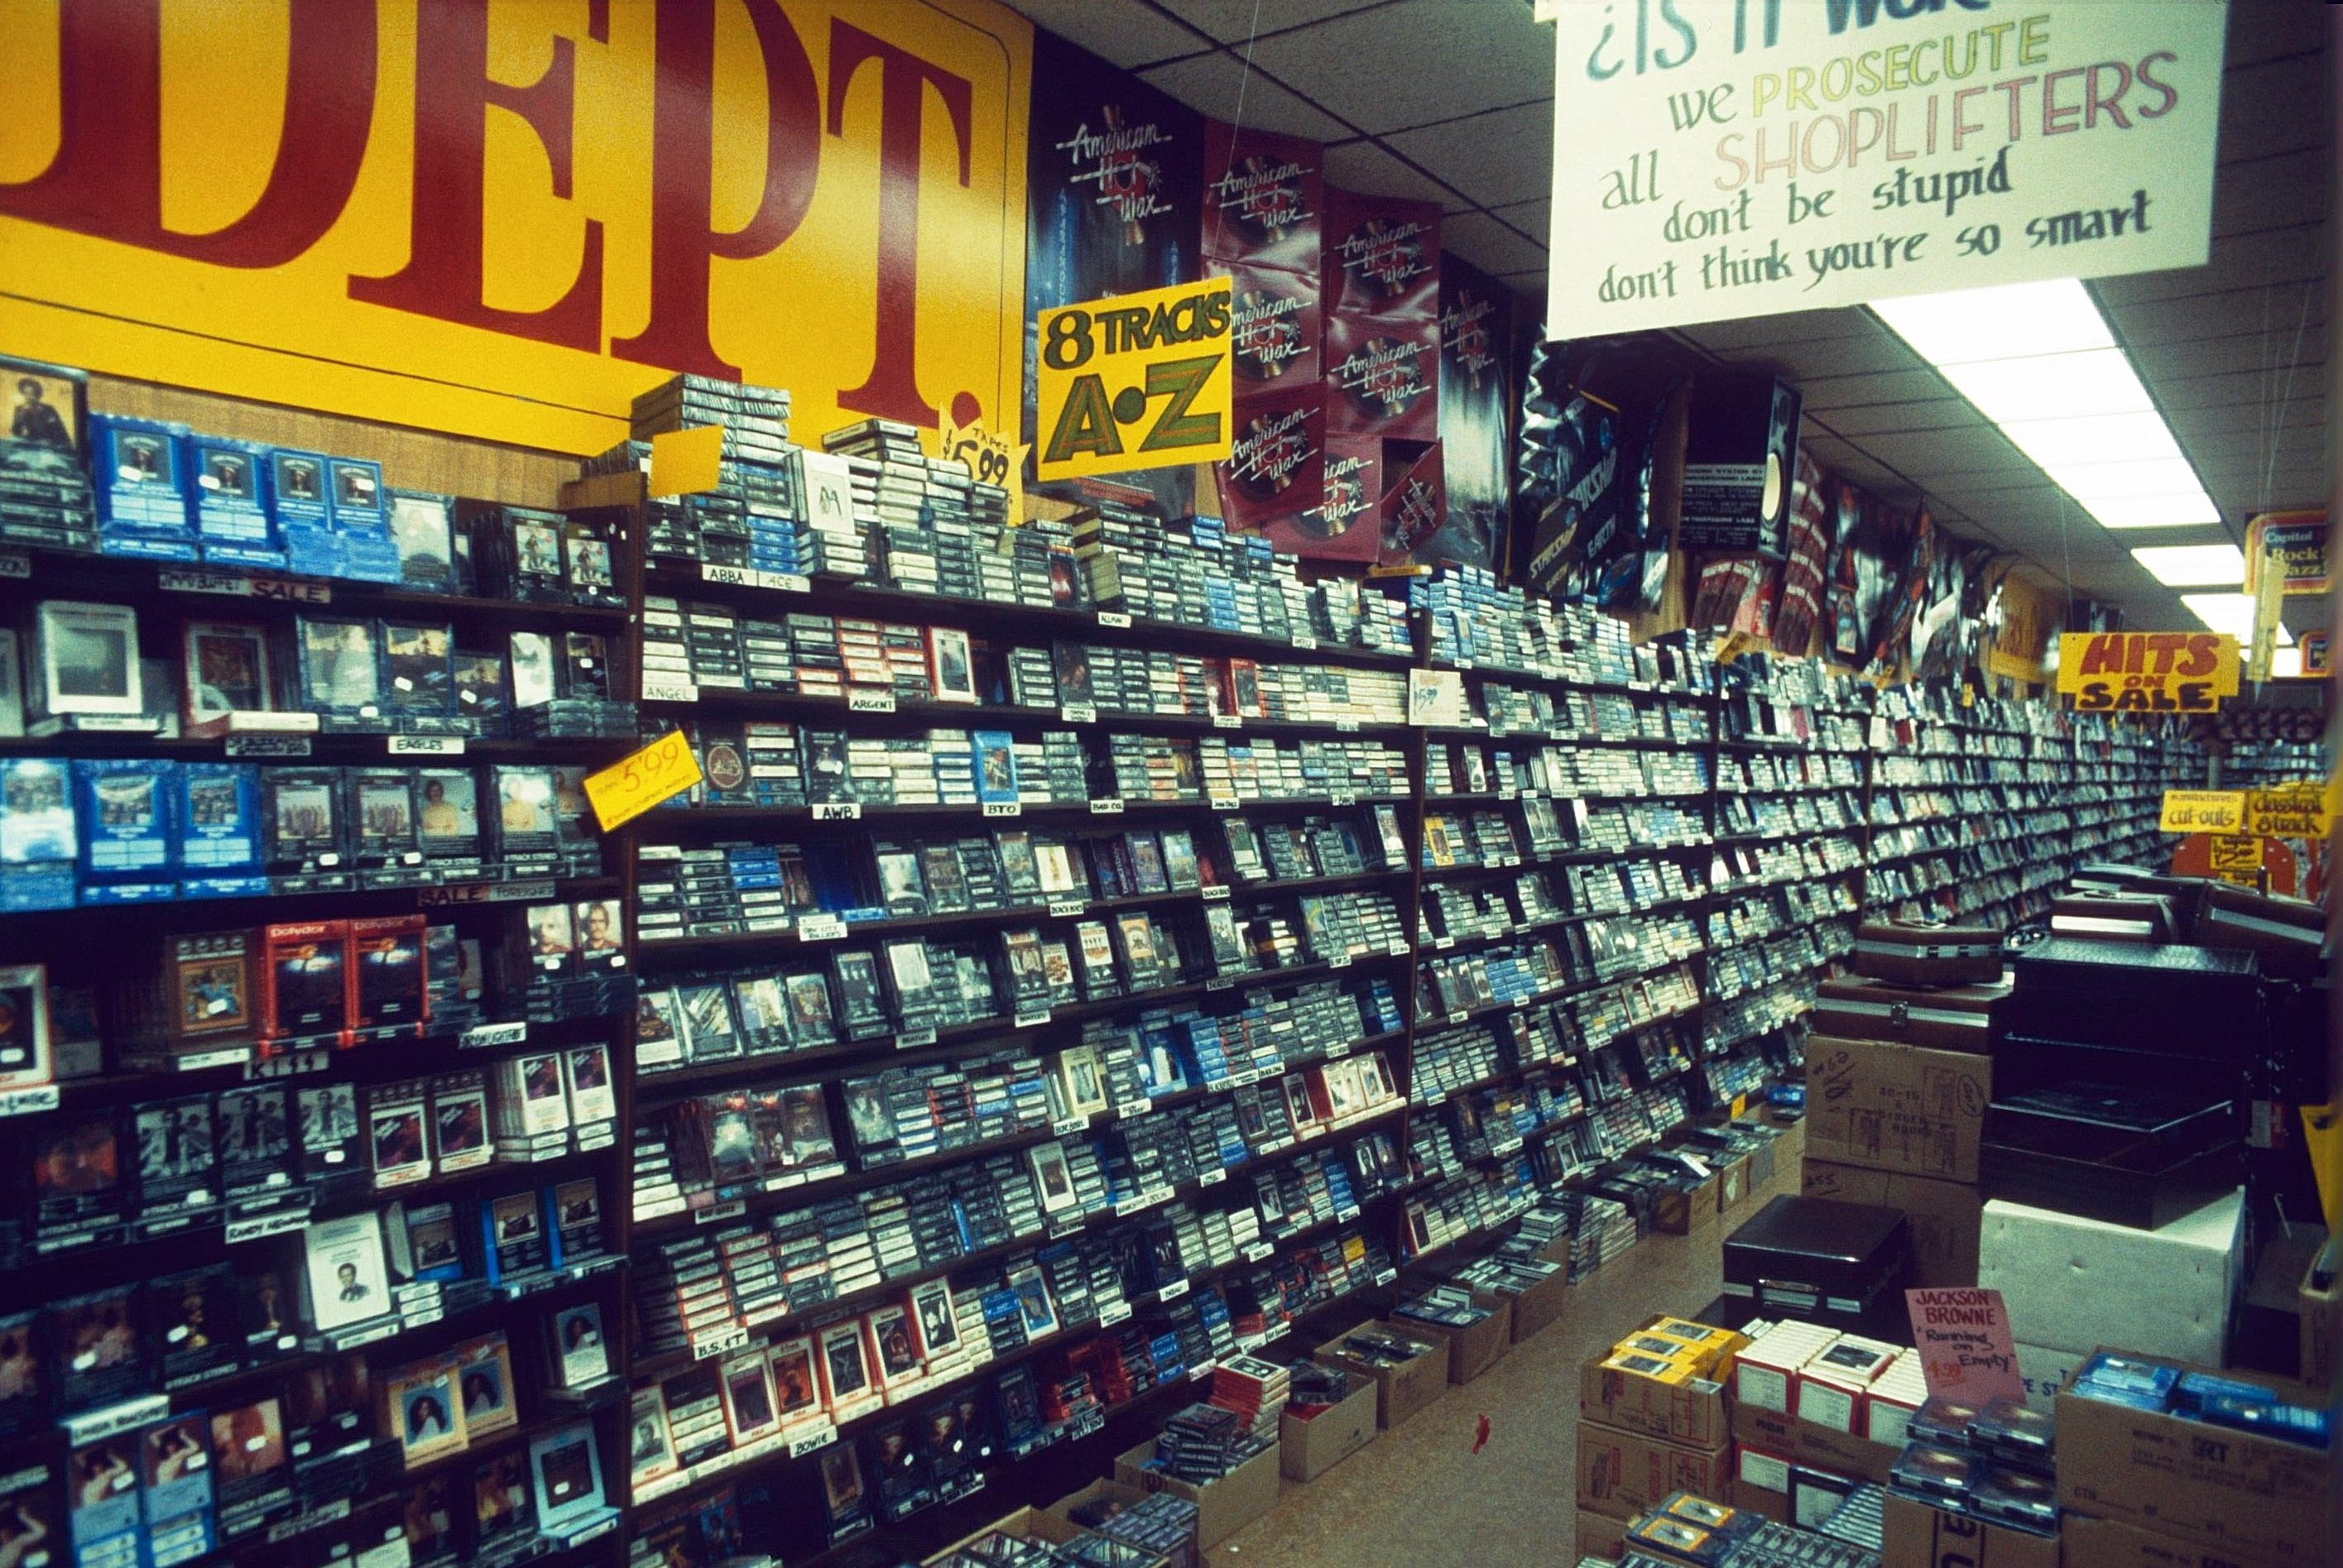 EIGHT TRACK CARTRIDGE DEPARTMENT IN TOWER RECORDS, AMERICA - 1978